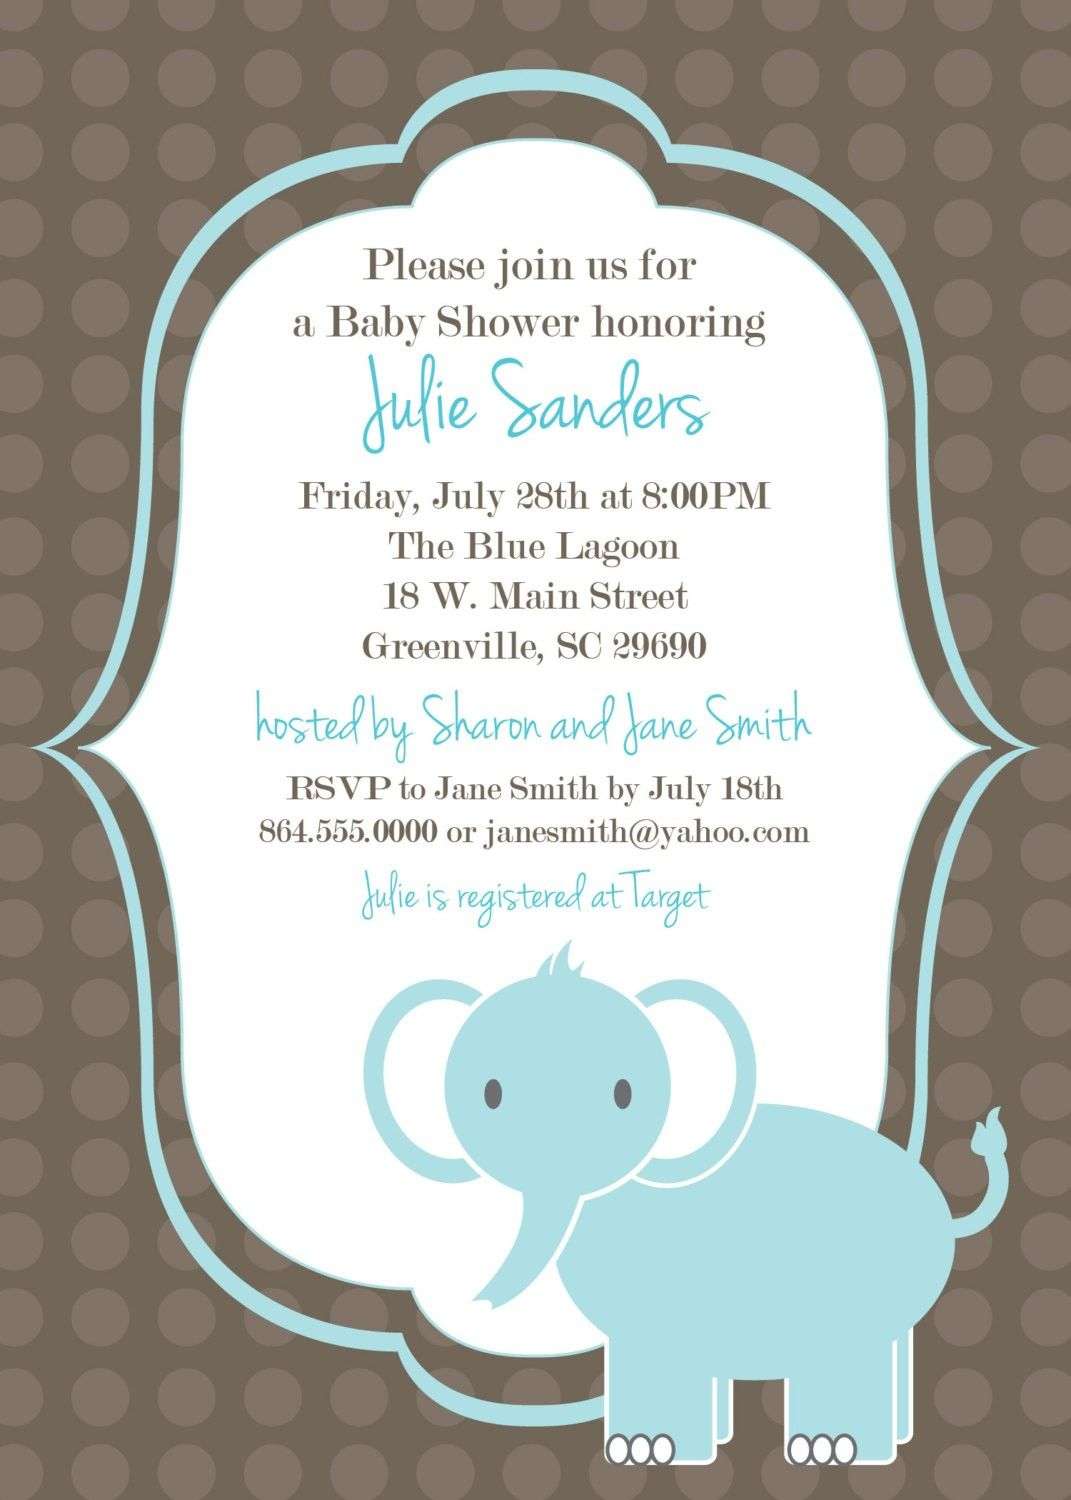 Full Size of Baby Shower:sturdy Baby Shower Invitation Template Image Concepts Baby Shower Invitation Template Baby Shower Boy Baby Shower Greeting Cards Baby Shower Name Tags Baby Shower Restaurants Personalized Baby Shower Free Printable Baby Shower Invitation Templates